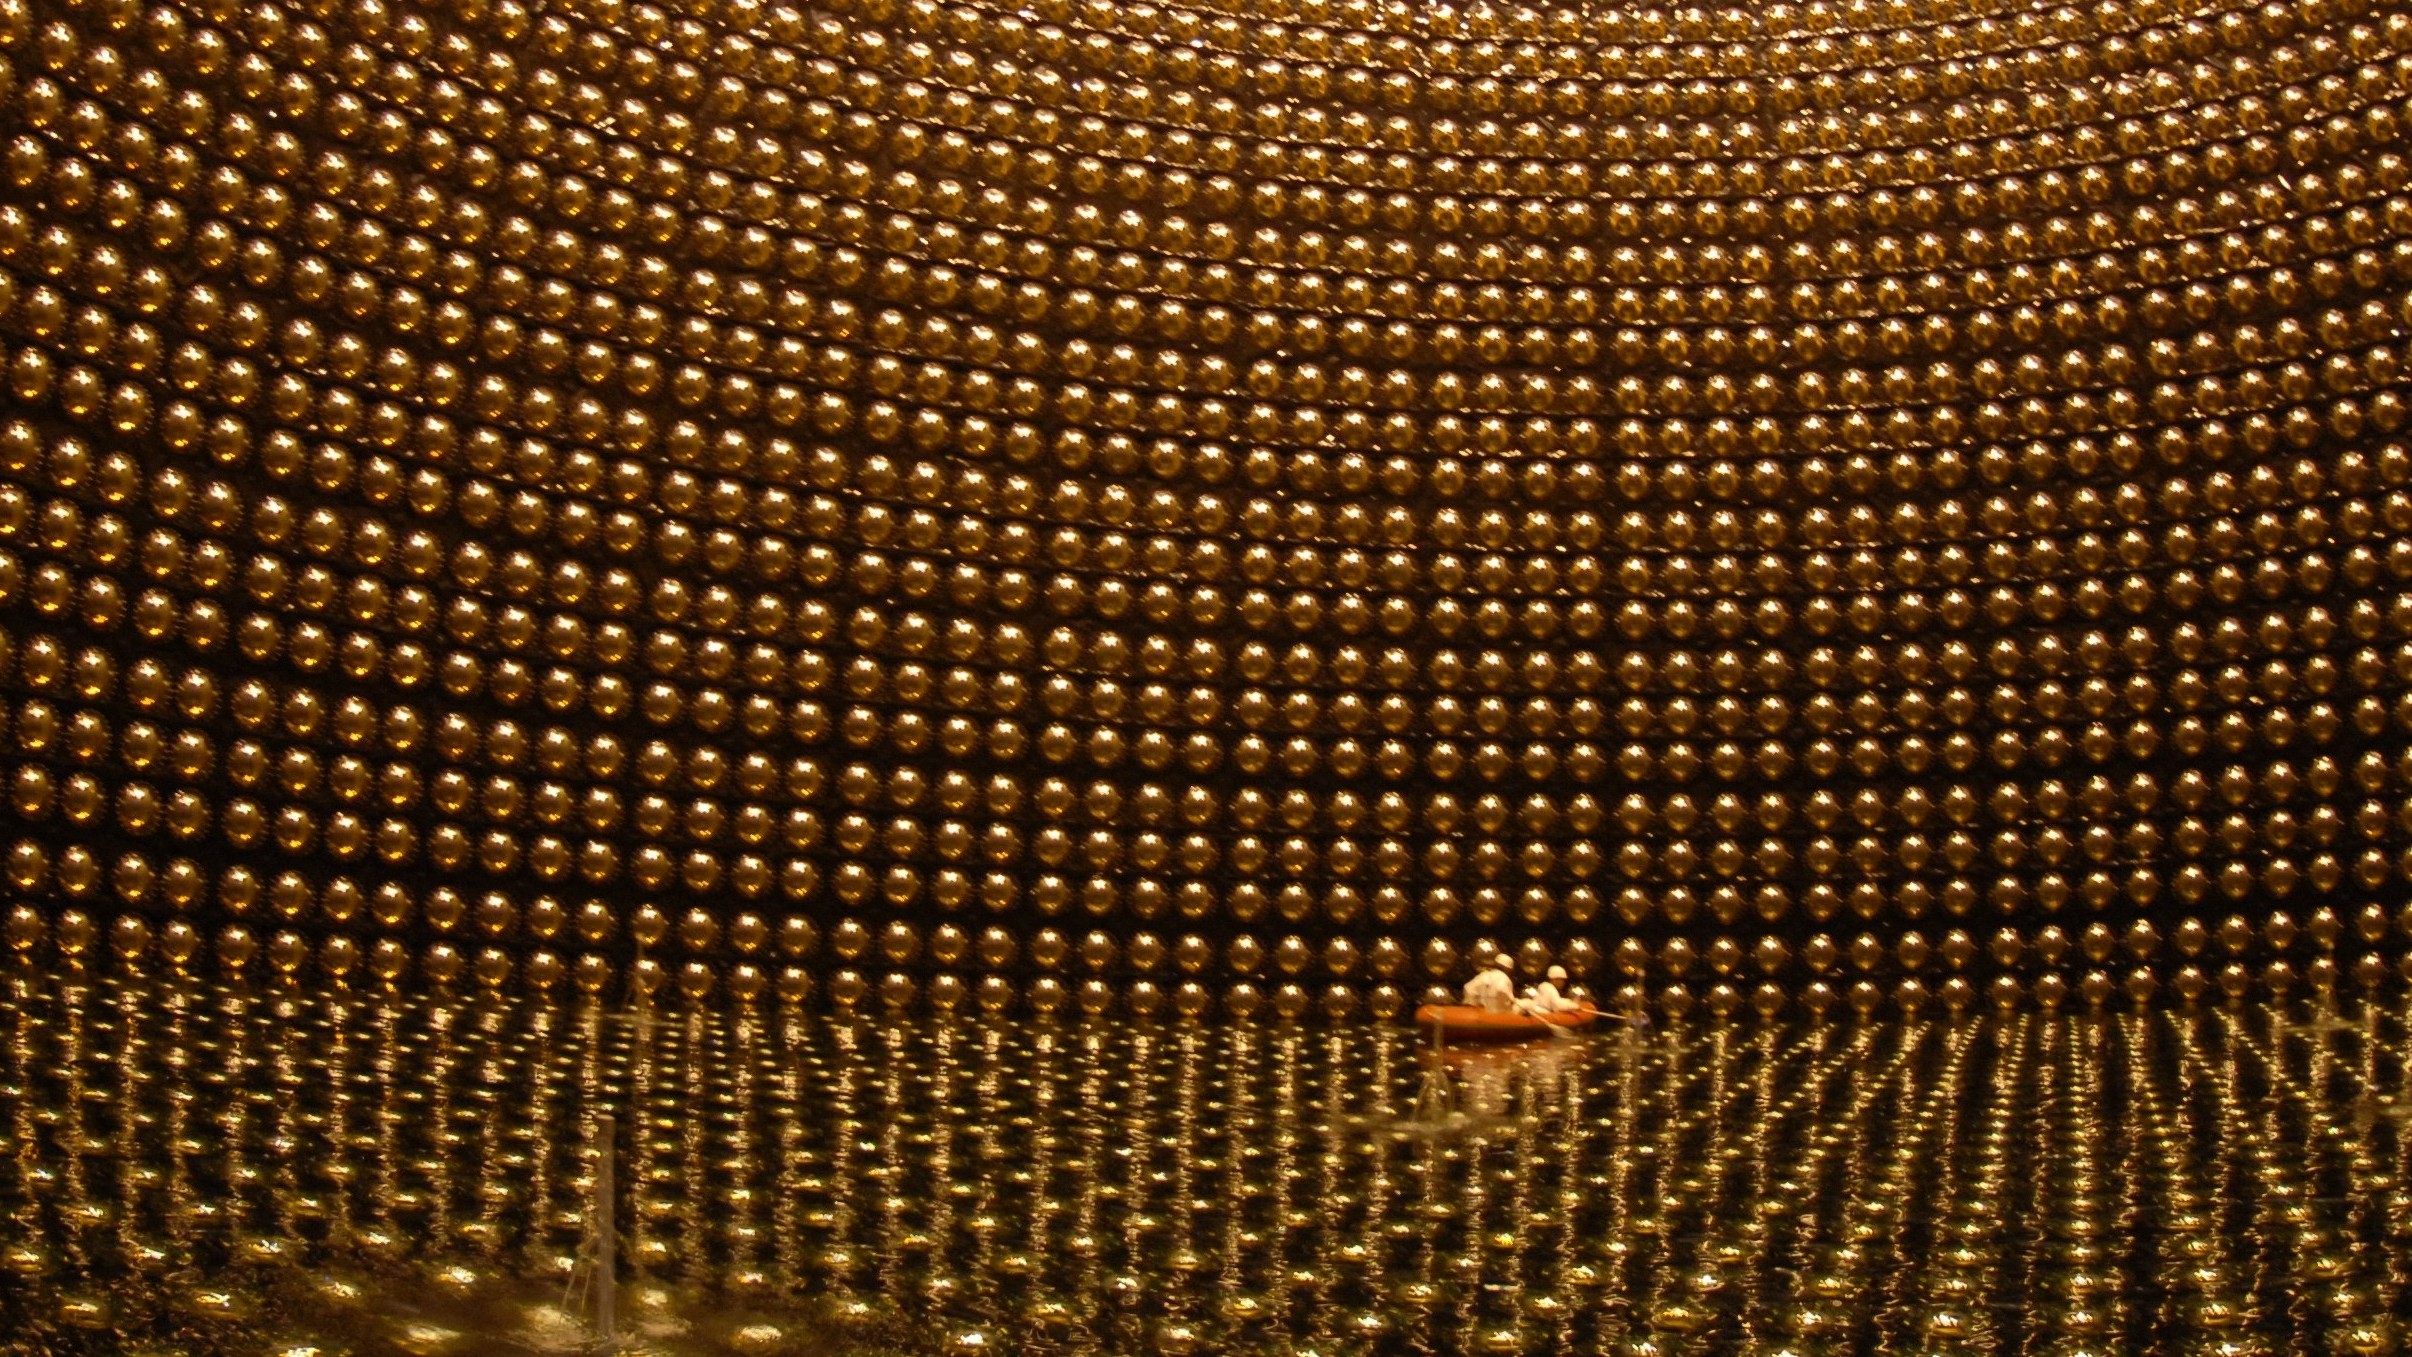 Why Neutrino Detectors Look So Damn Cool